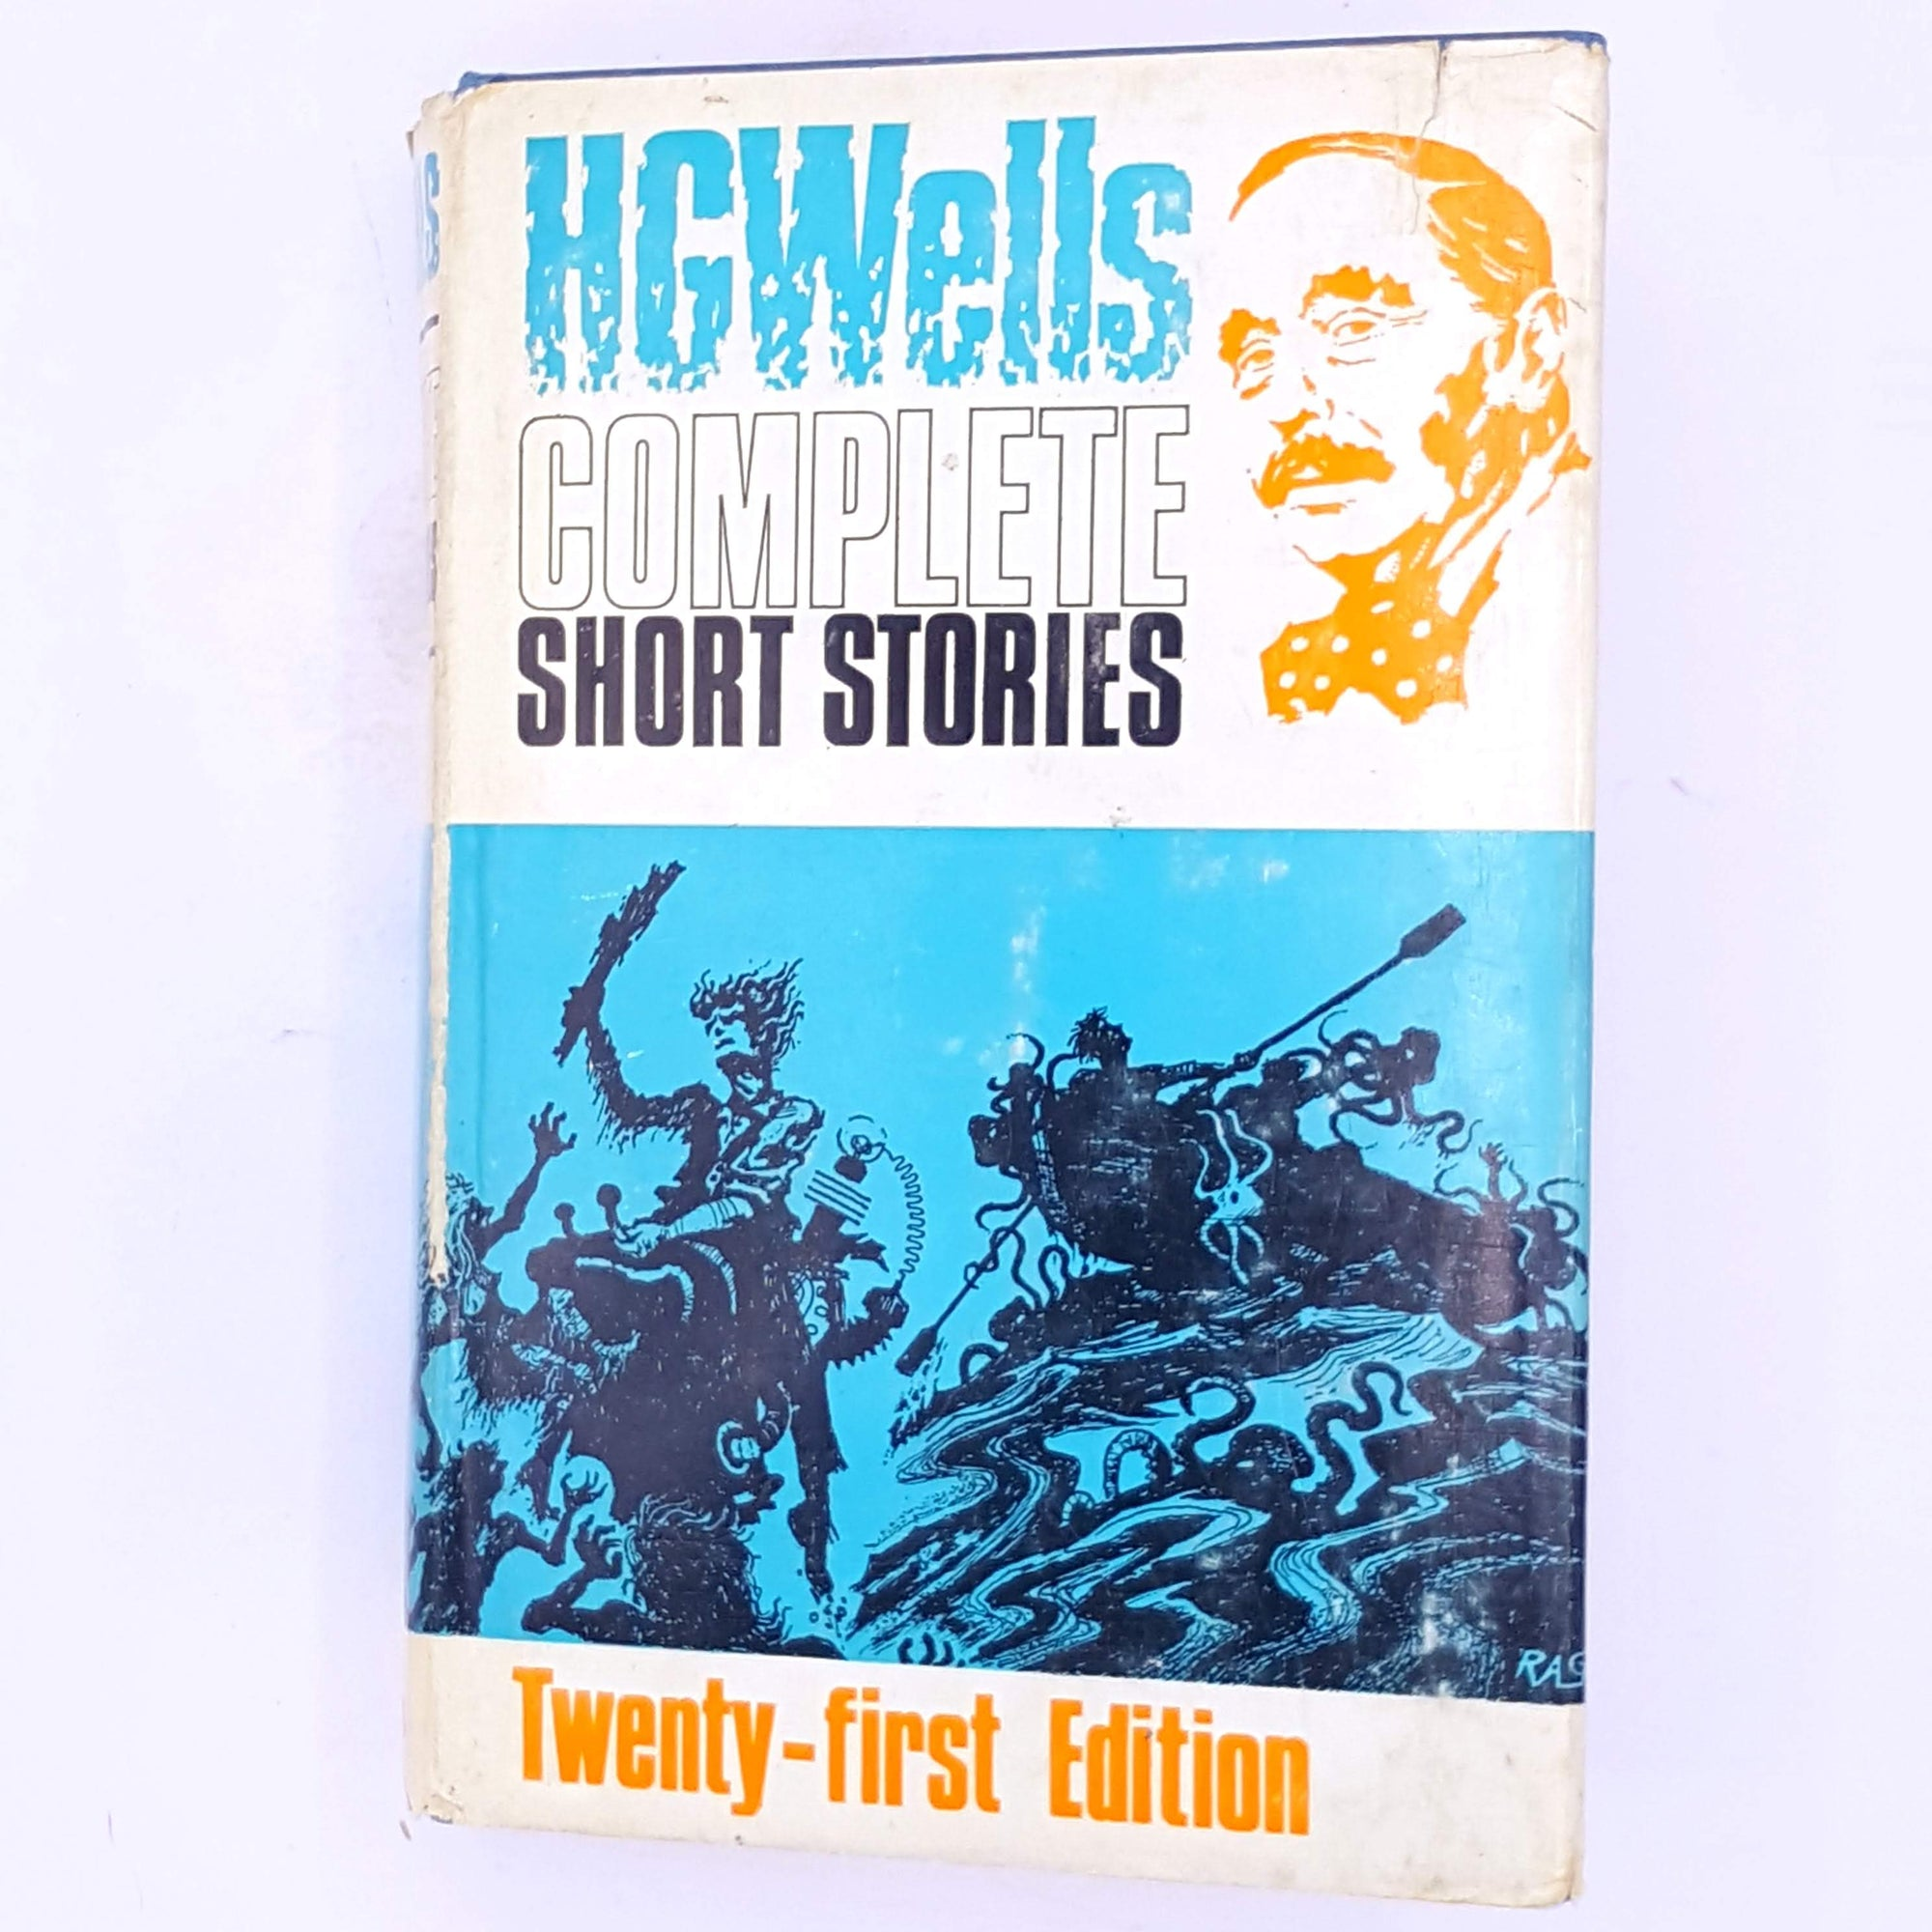 horror-country-house-library-thrift-antique-decorative-vintage-books-science-fictions-H.G.-Wells-Complete-Short-Stories-old-classic-thriller-patterned-